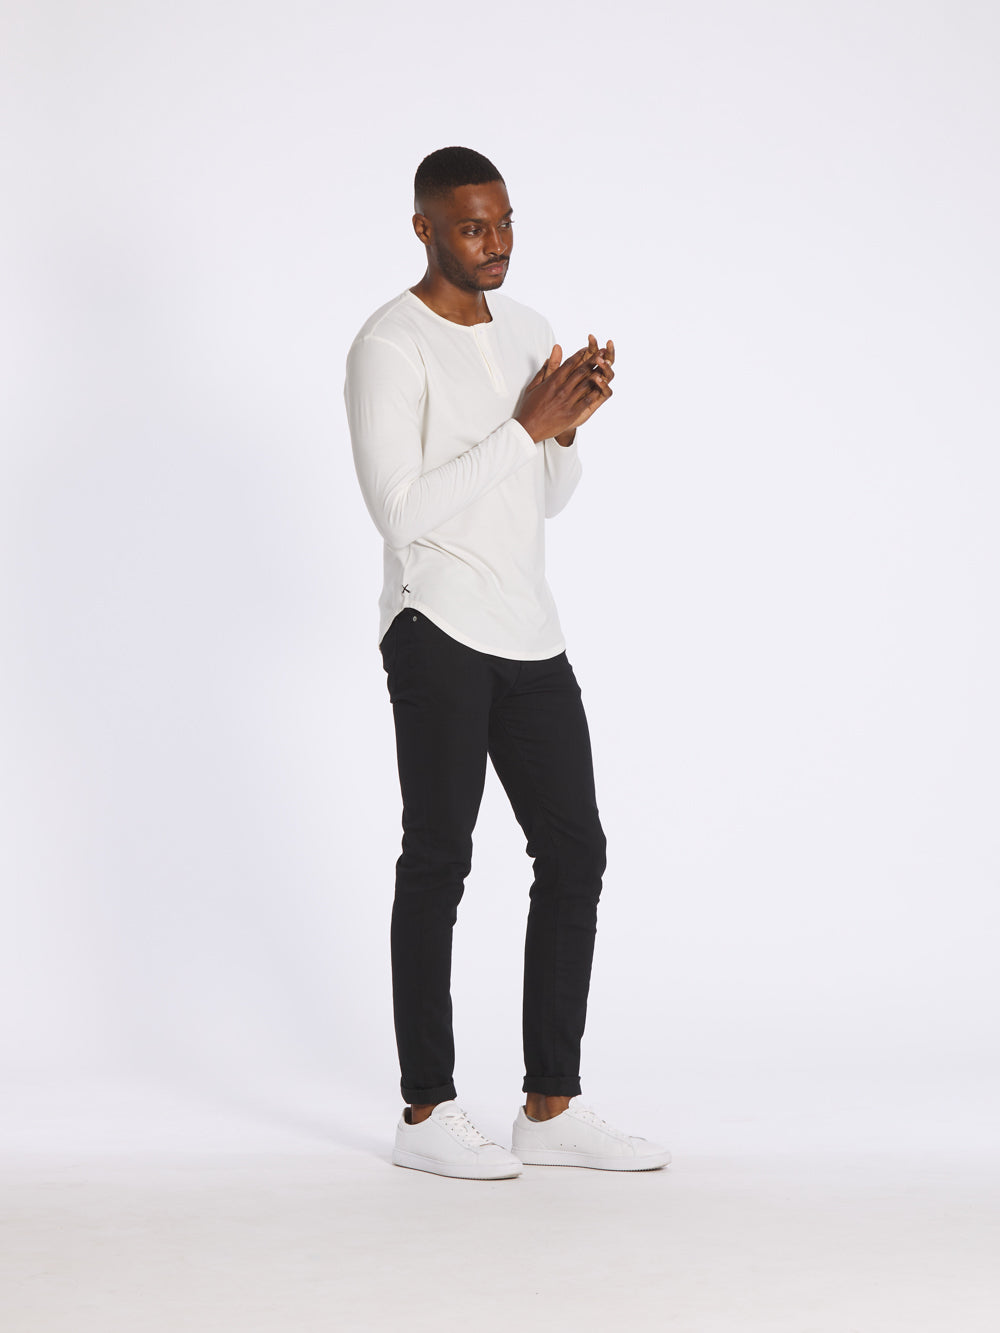 [info]--Tyheem is 6'1 and wears a size M